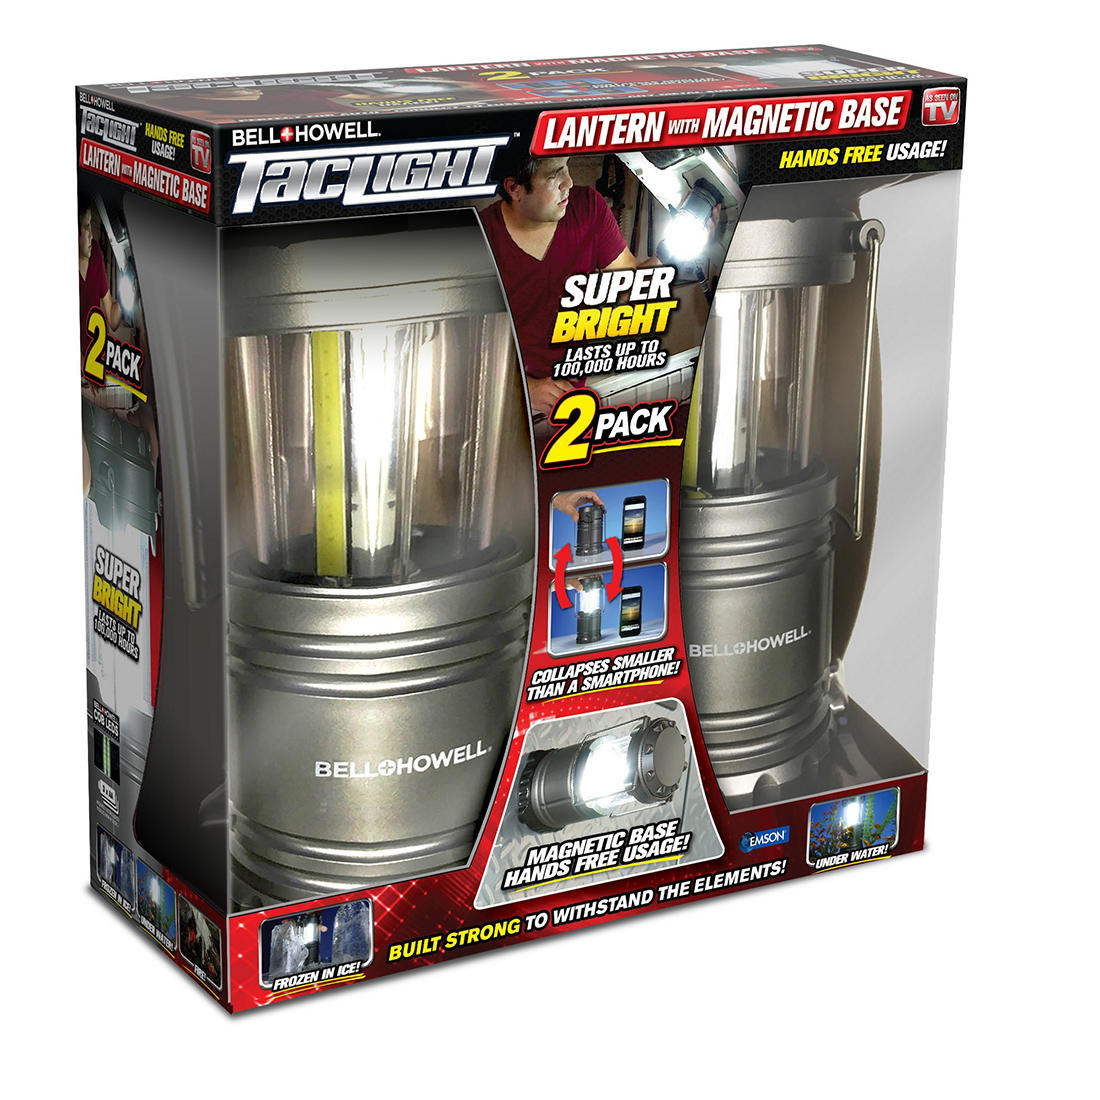 Bell + Howell TacLight Lantern with Magnetic Base, 2 pk